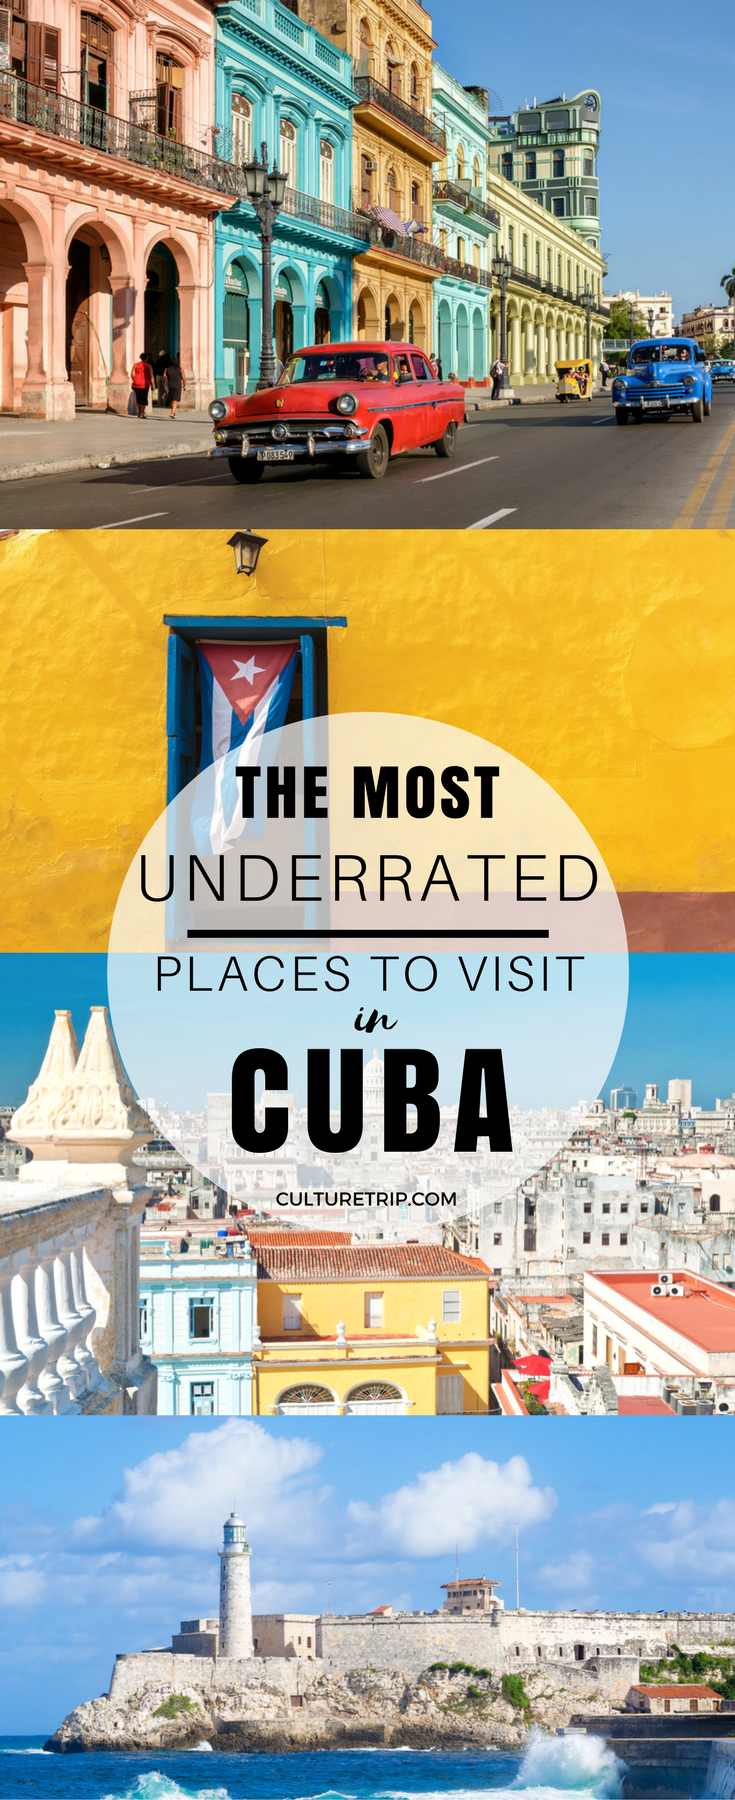 2017 Travel To Cuba The 10 Most Underrated Places To Visit In Cuba In 2017